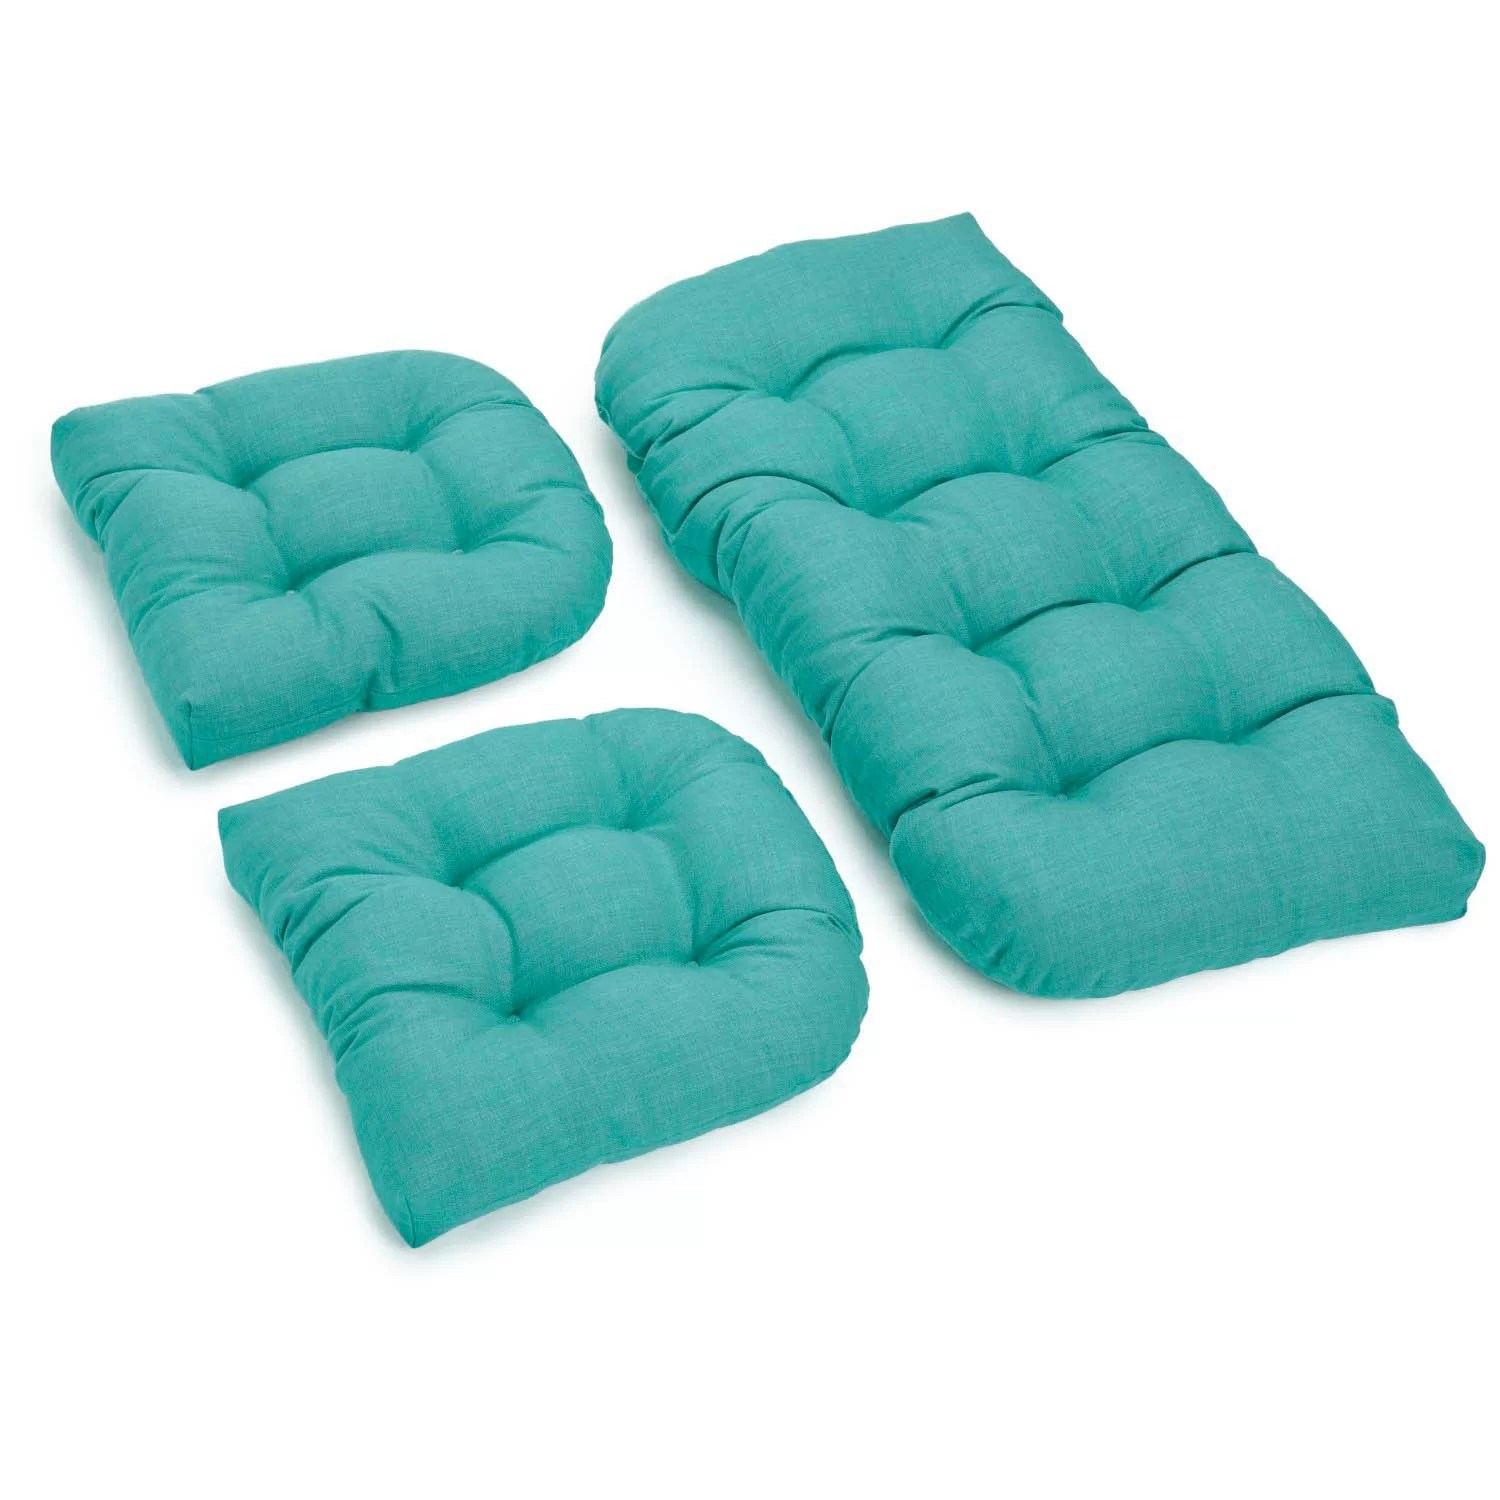 1 piece patio chair cushions high seat chairs for elderly uk 3 outdoor bench and dining cushion set wayfair